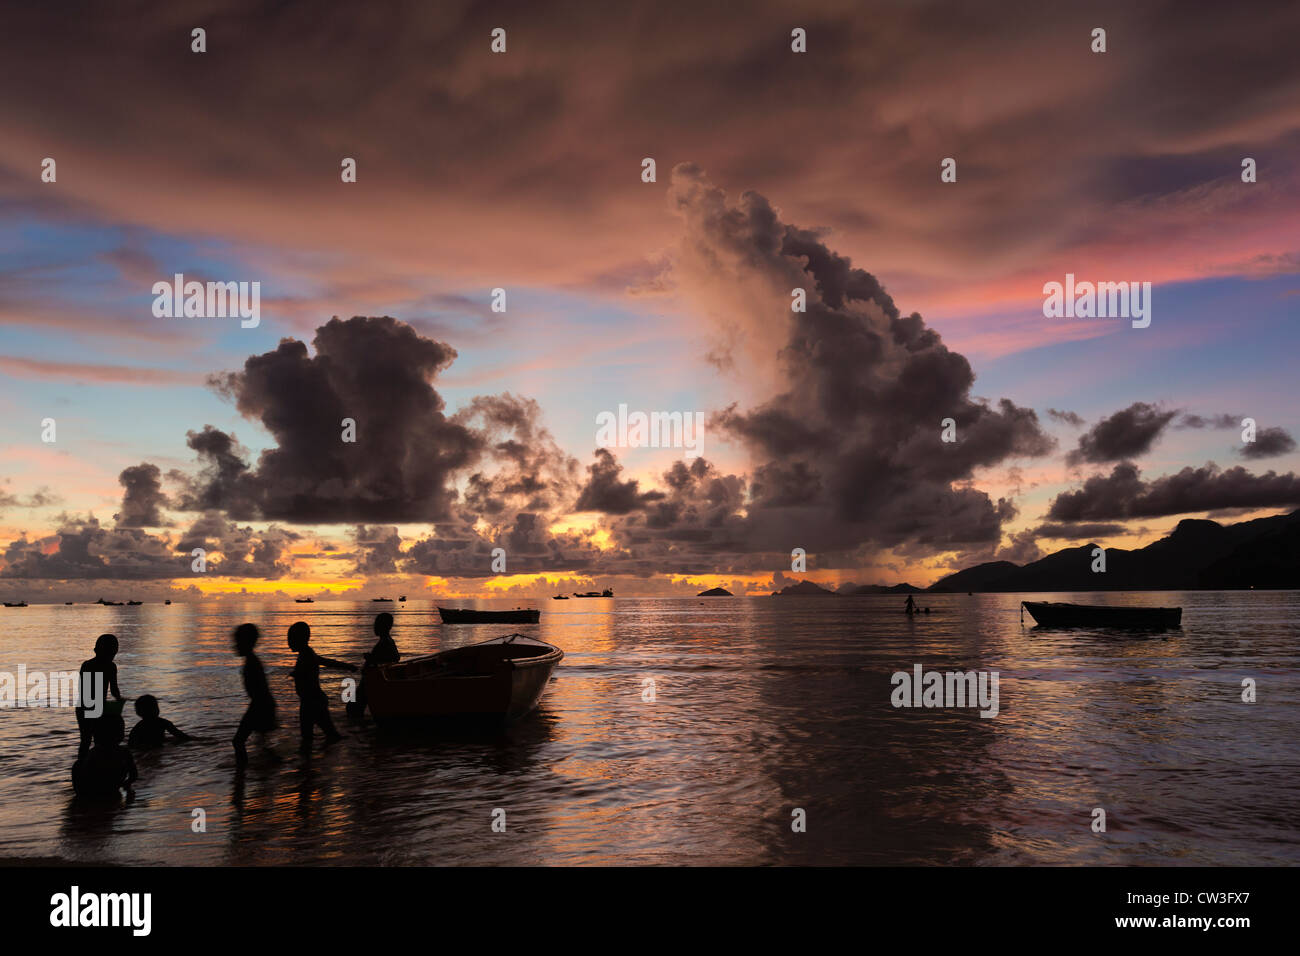 Fishing boats with children at sunset on a secluded beach. Mahe Seychelles - Stock Image